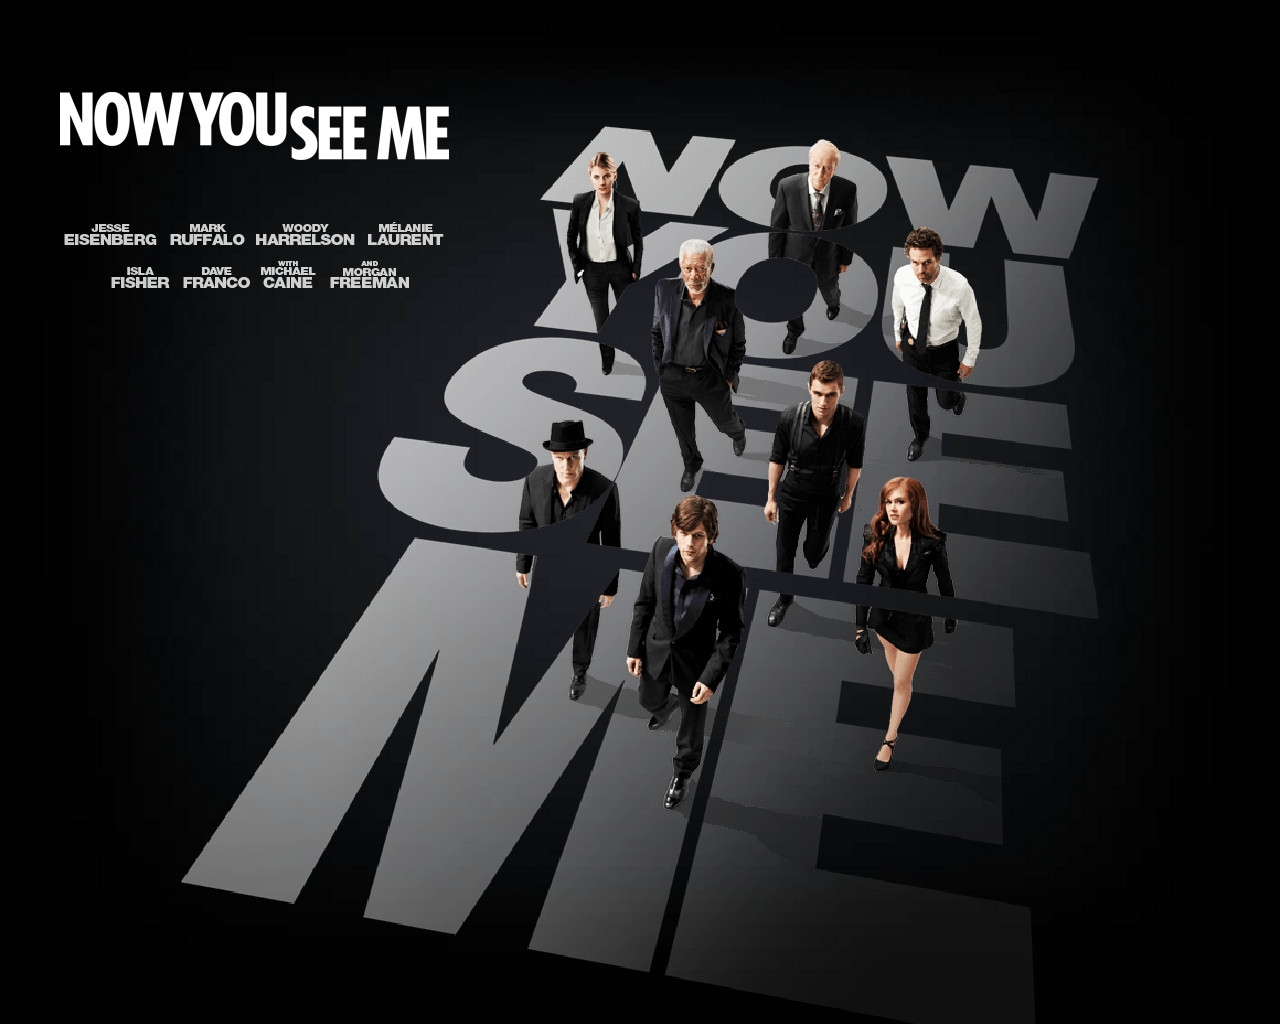 now you see me photos now you see me images 1280x1024